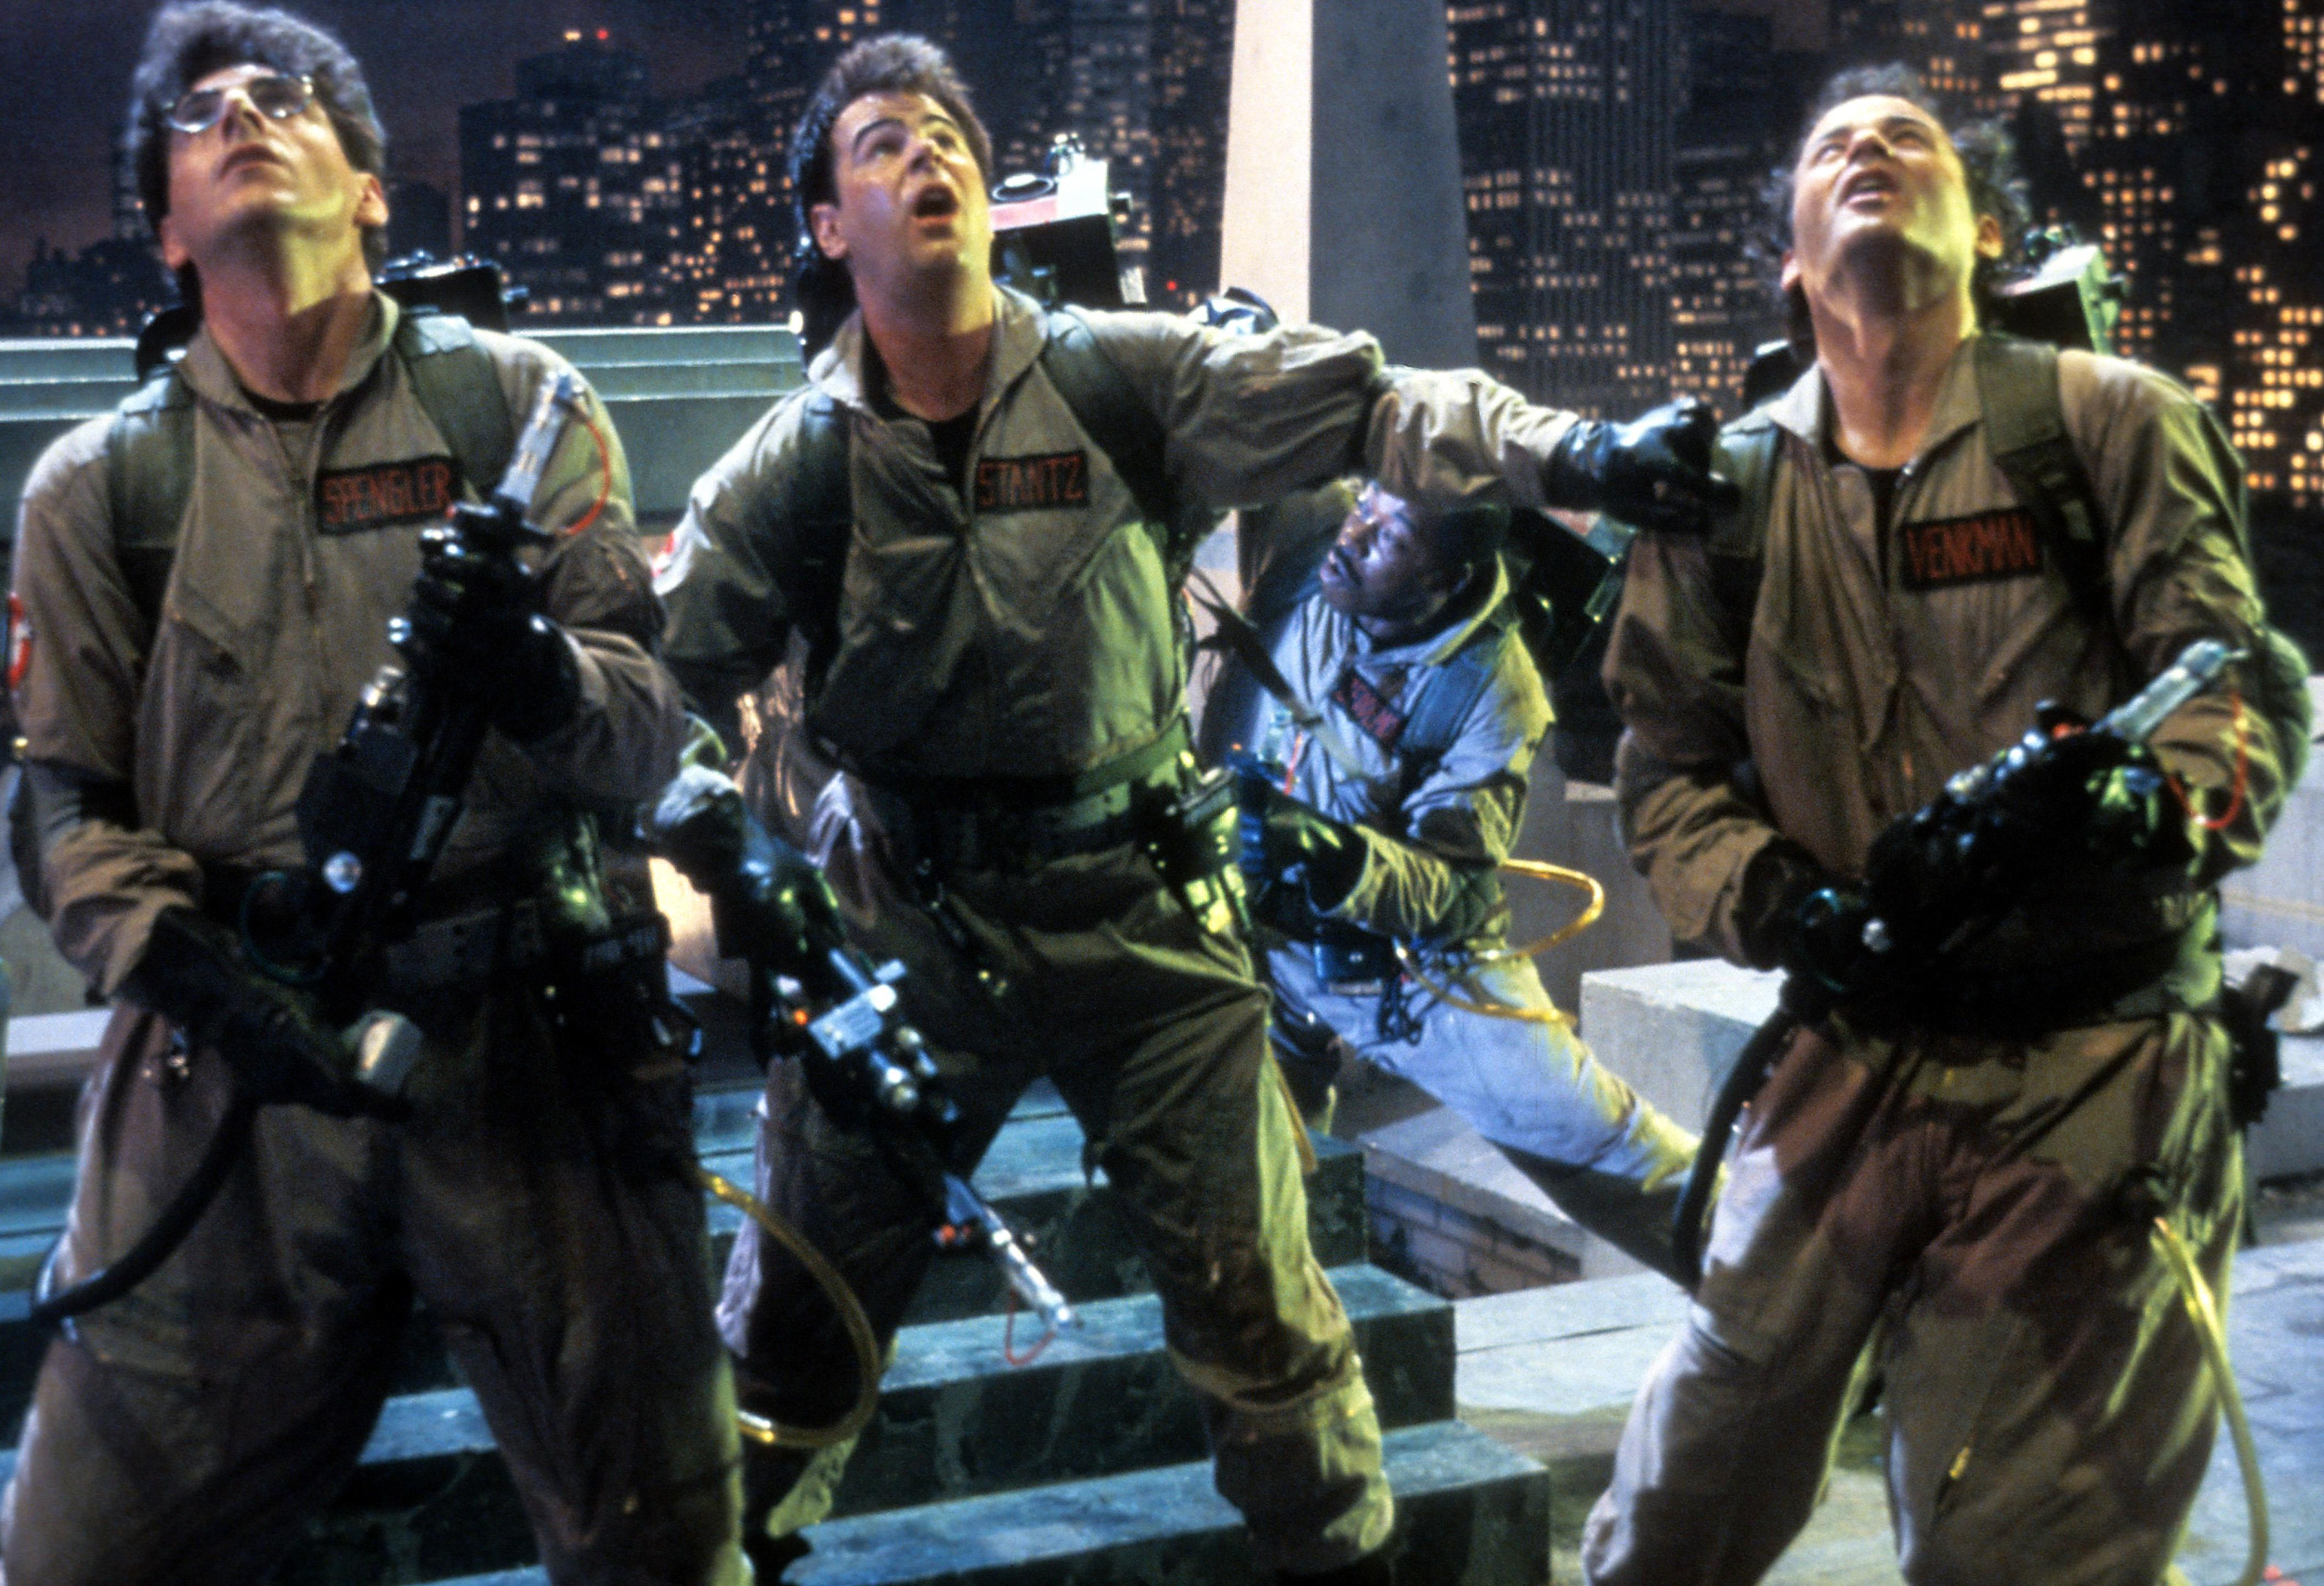 Bill Murray confirms he's back as Peter Venkman in Ghostbusters: Afterlife